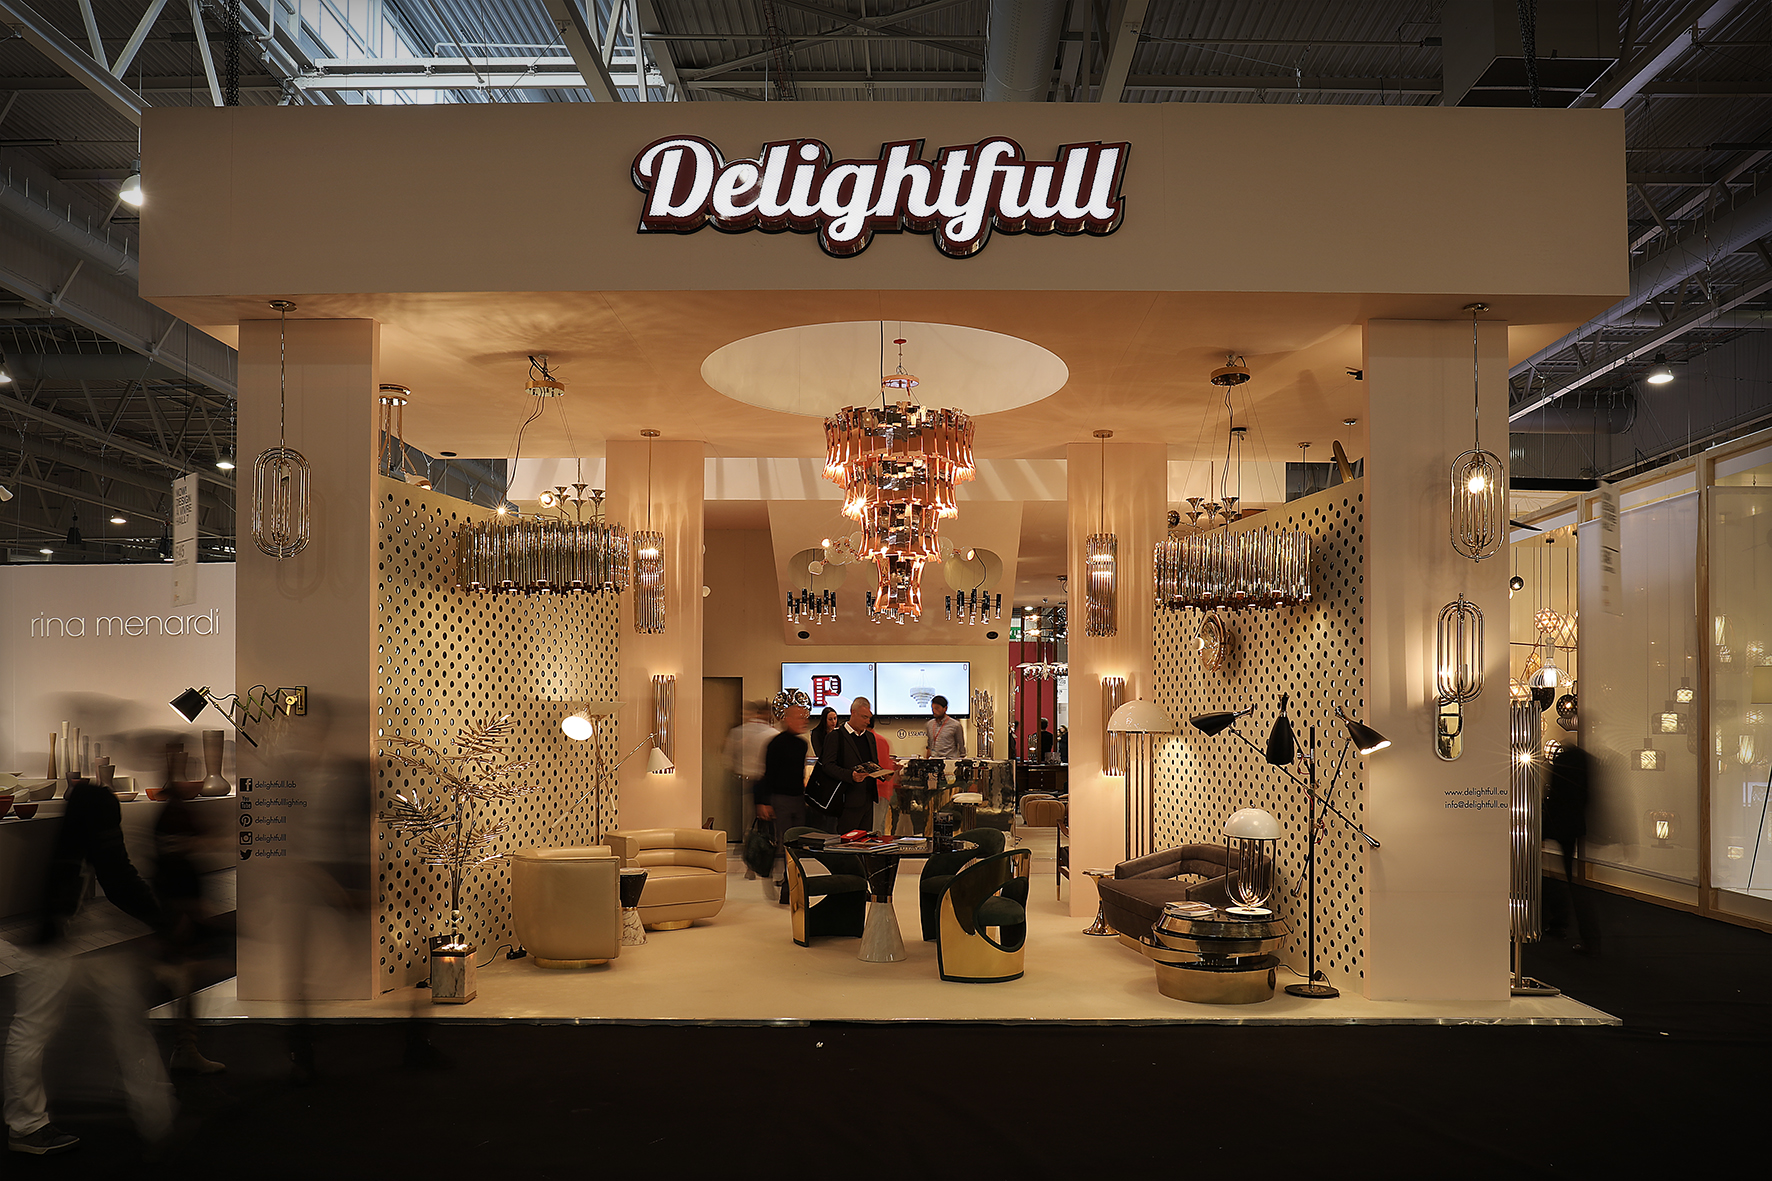 Maison et objet paris 2017 highlight of the day delightfull for Maison et objet 2017